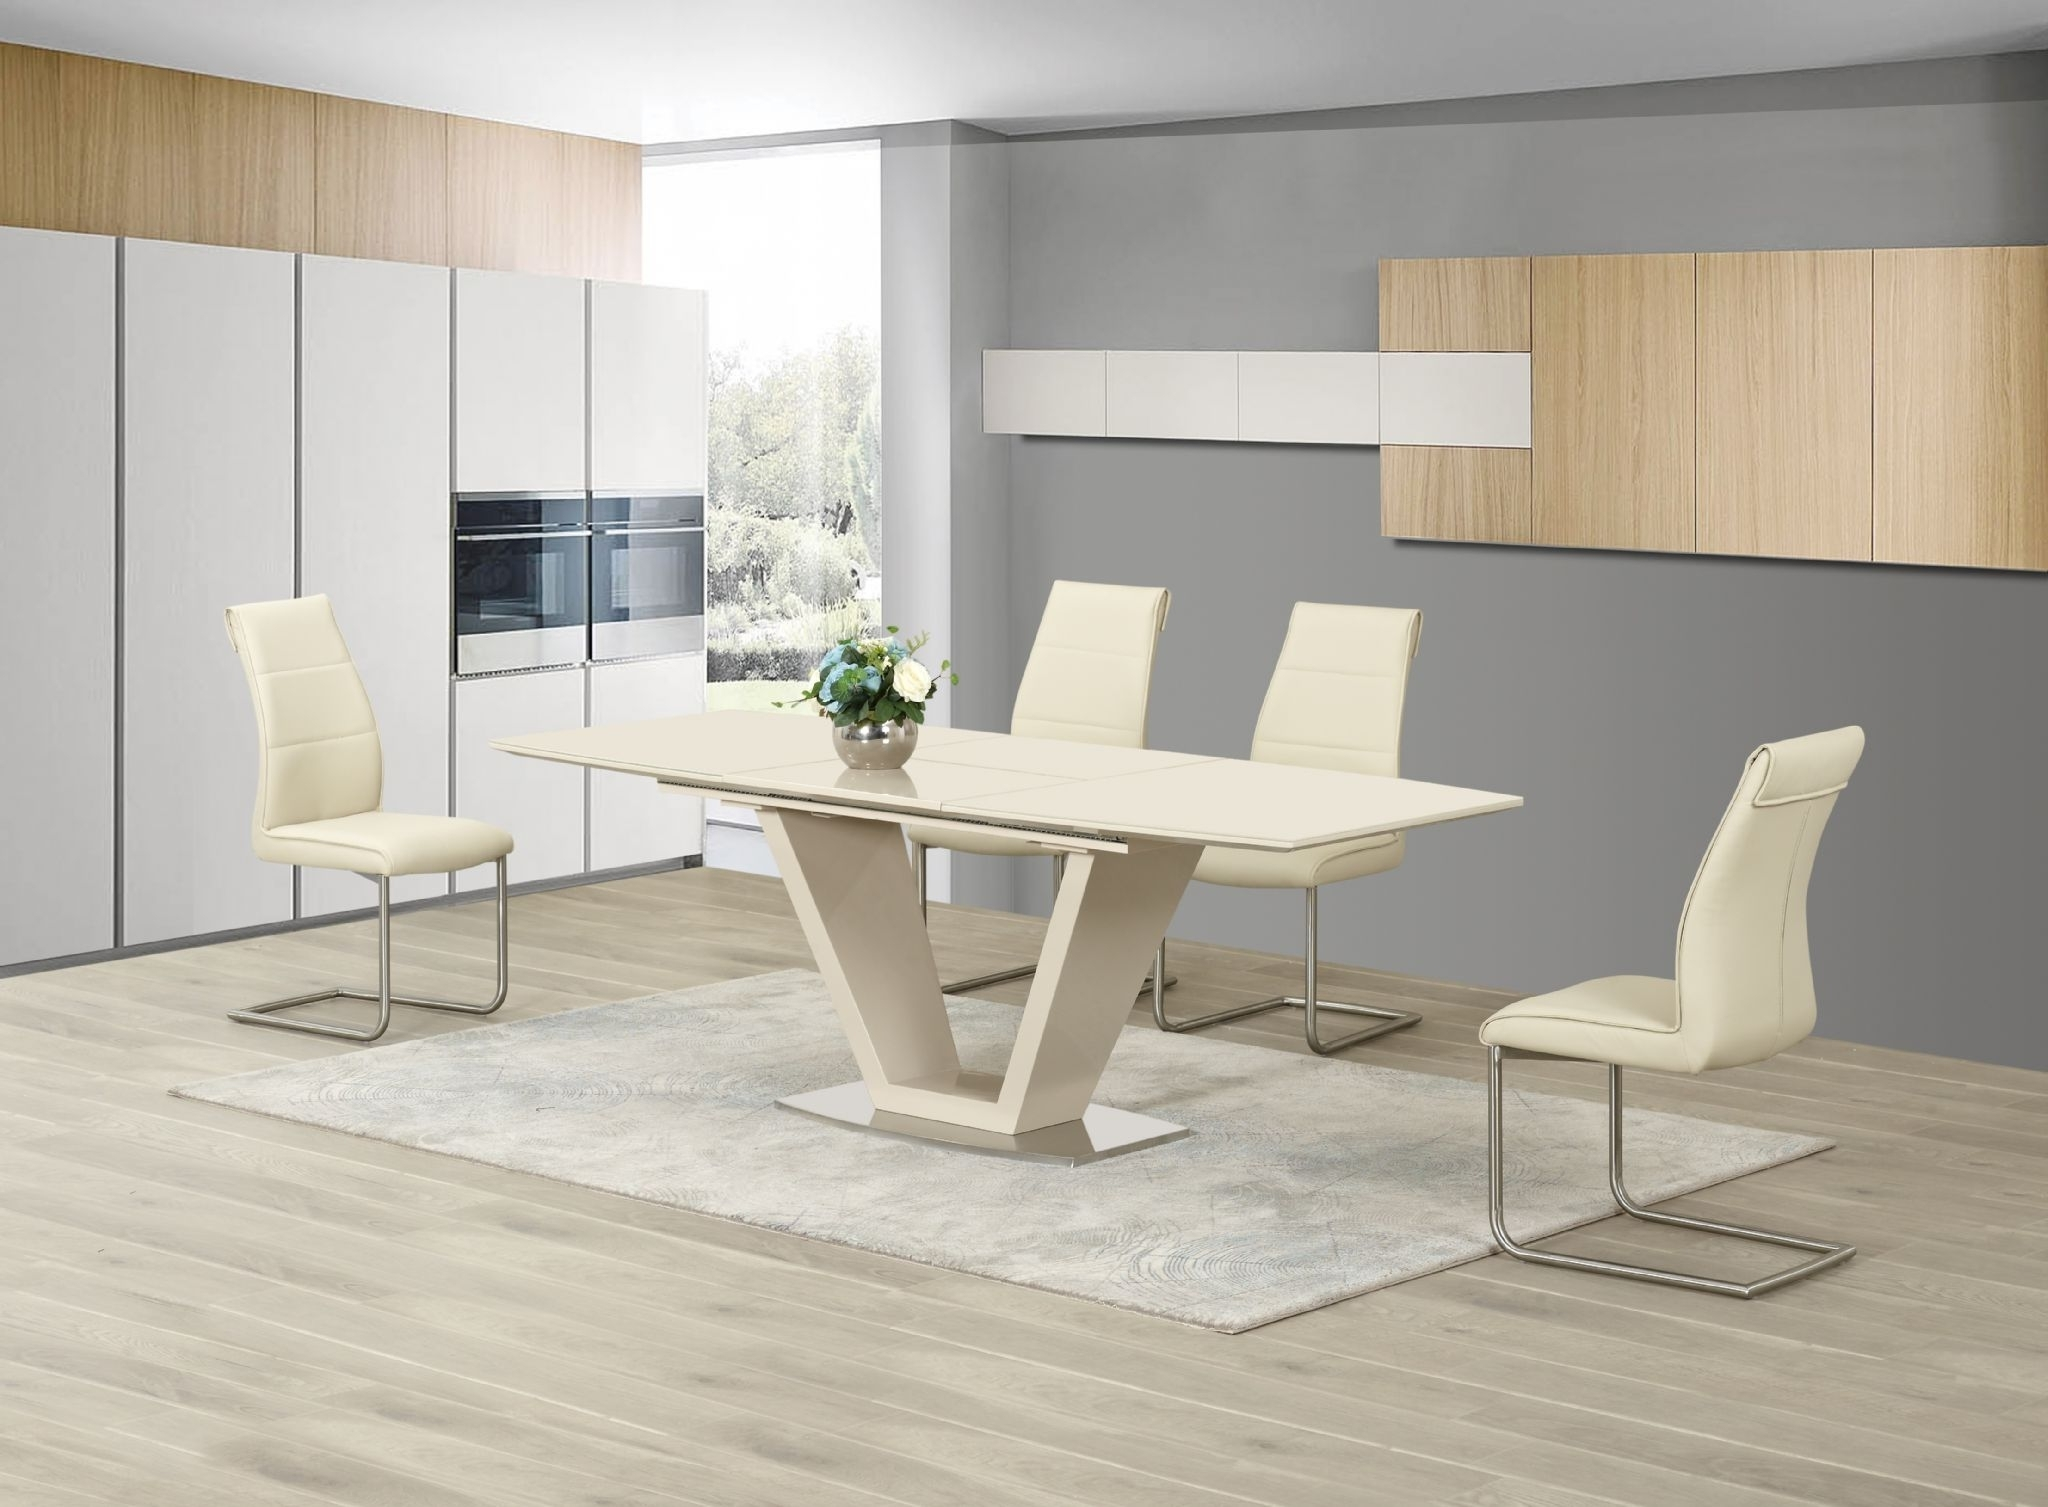 Ga Loriga Cream Gloss Glass Designer Dining Table Extending 160 220 Within Fashionable Extending Gloss Dining Tables (View 5 of 25)